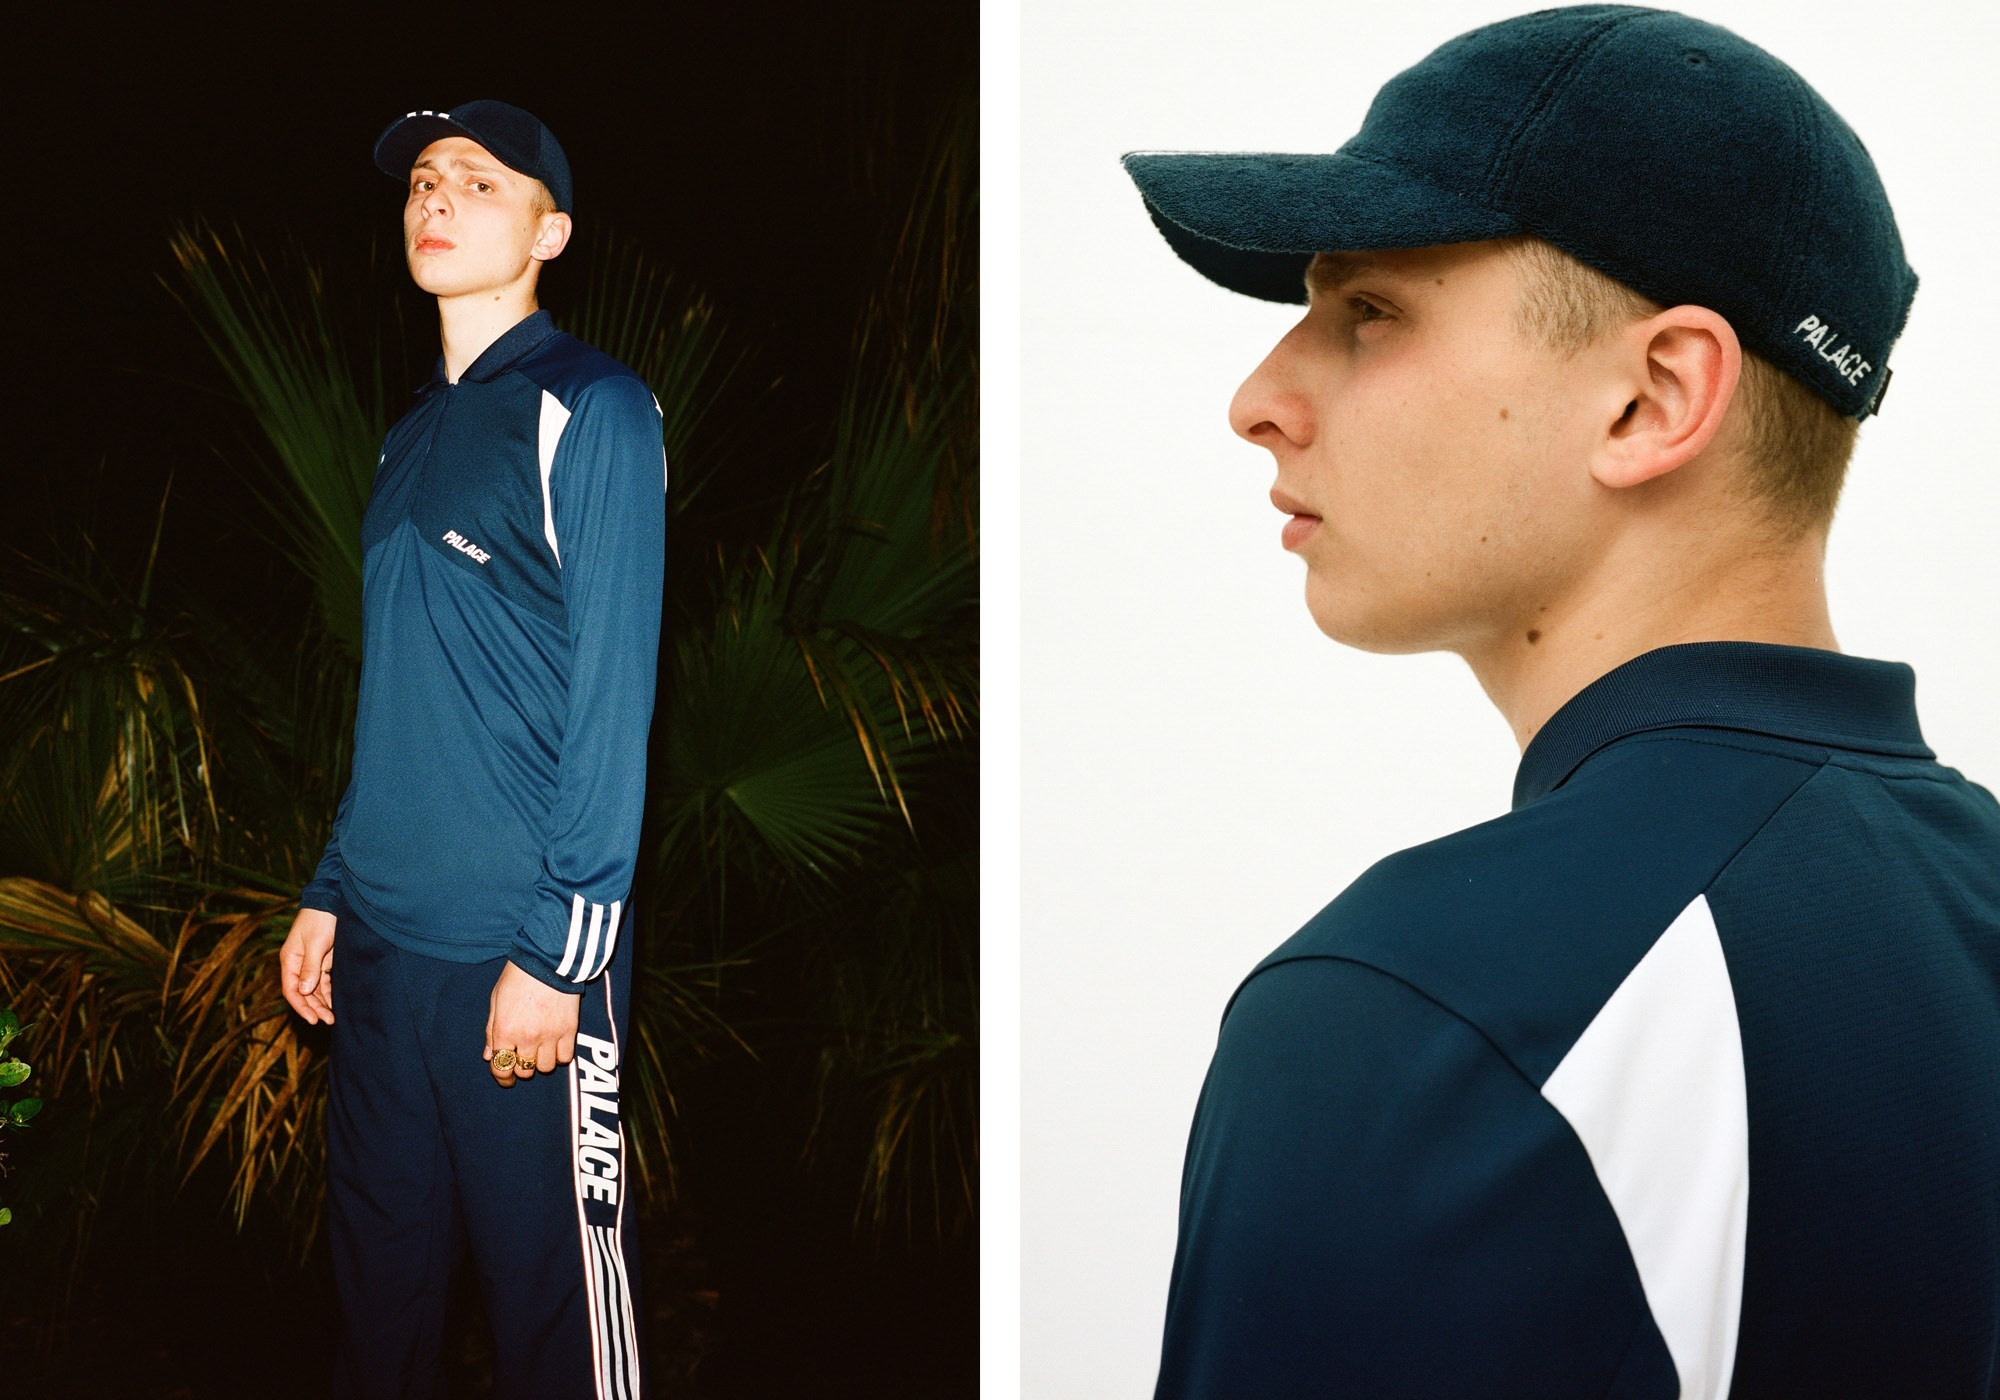 5a88abd7e168 PALACE SKATEBOARDS X ADIDAS ORIGINALS - FALL WINTER 2015 COLLECTION. SHOP  AT STREETMACHINE JUNE